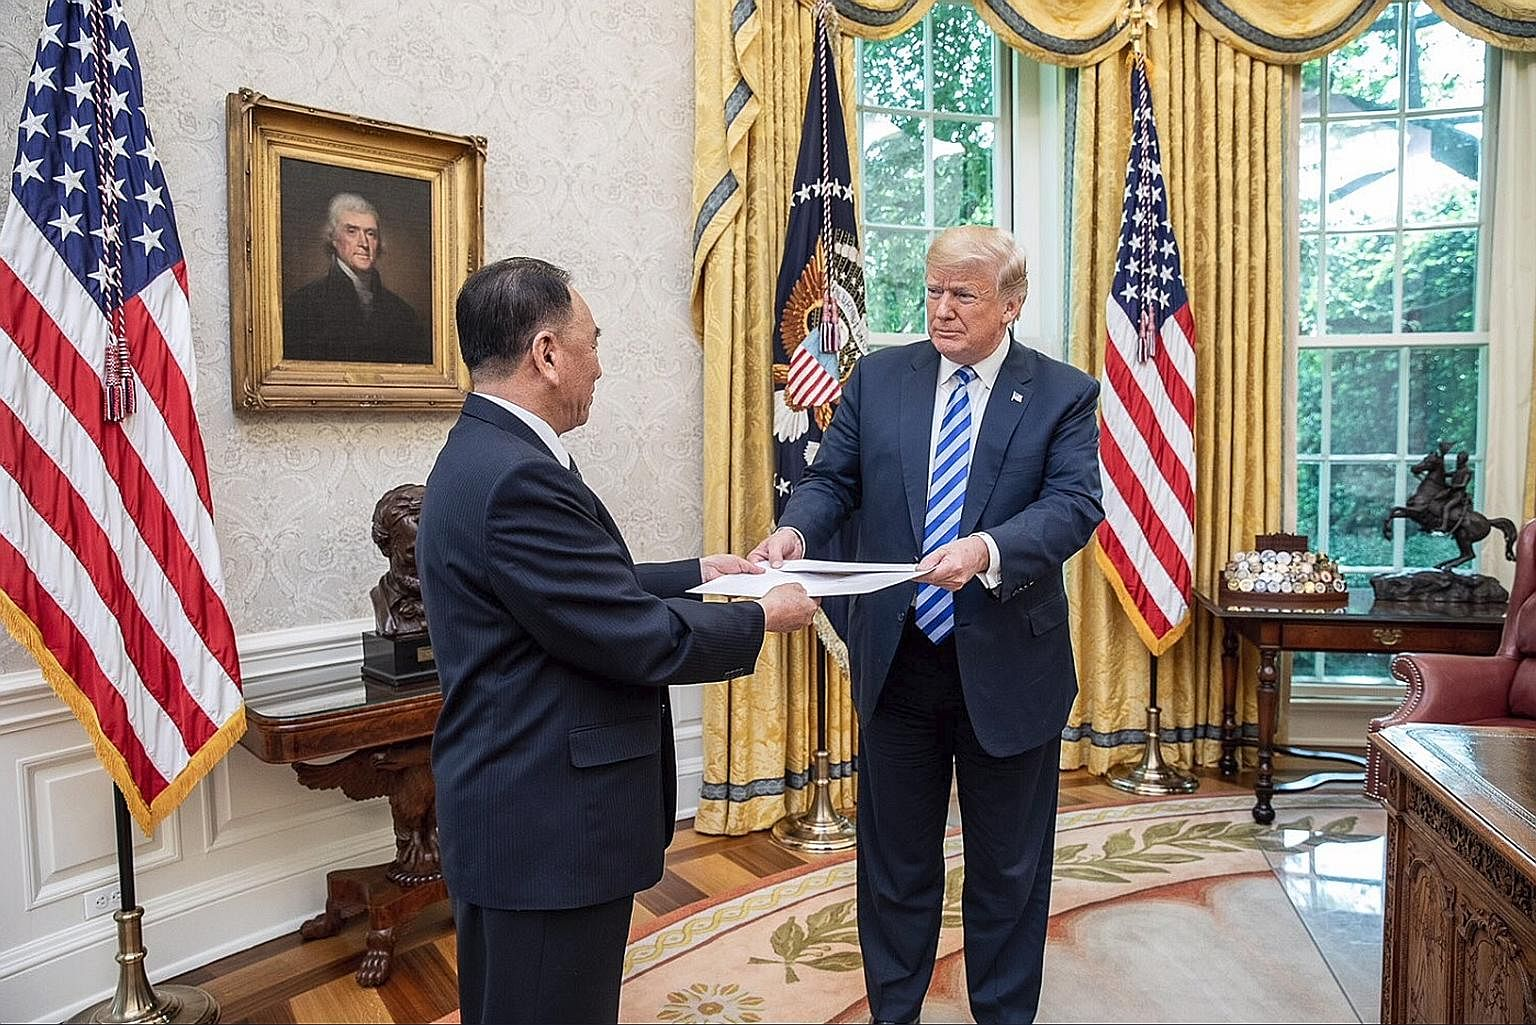 General Kim Yong Chol, vice-chairman of DPRK's Workers' Party of Korea central committee, handing a letter from North Korean leader Kim Jong Un to US President Donald Trump at the Oval Office at the White House in Washington on June 1.